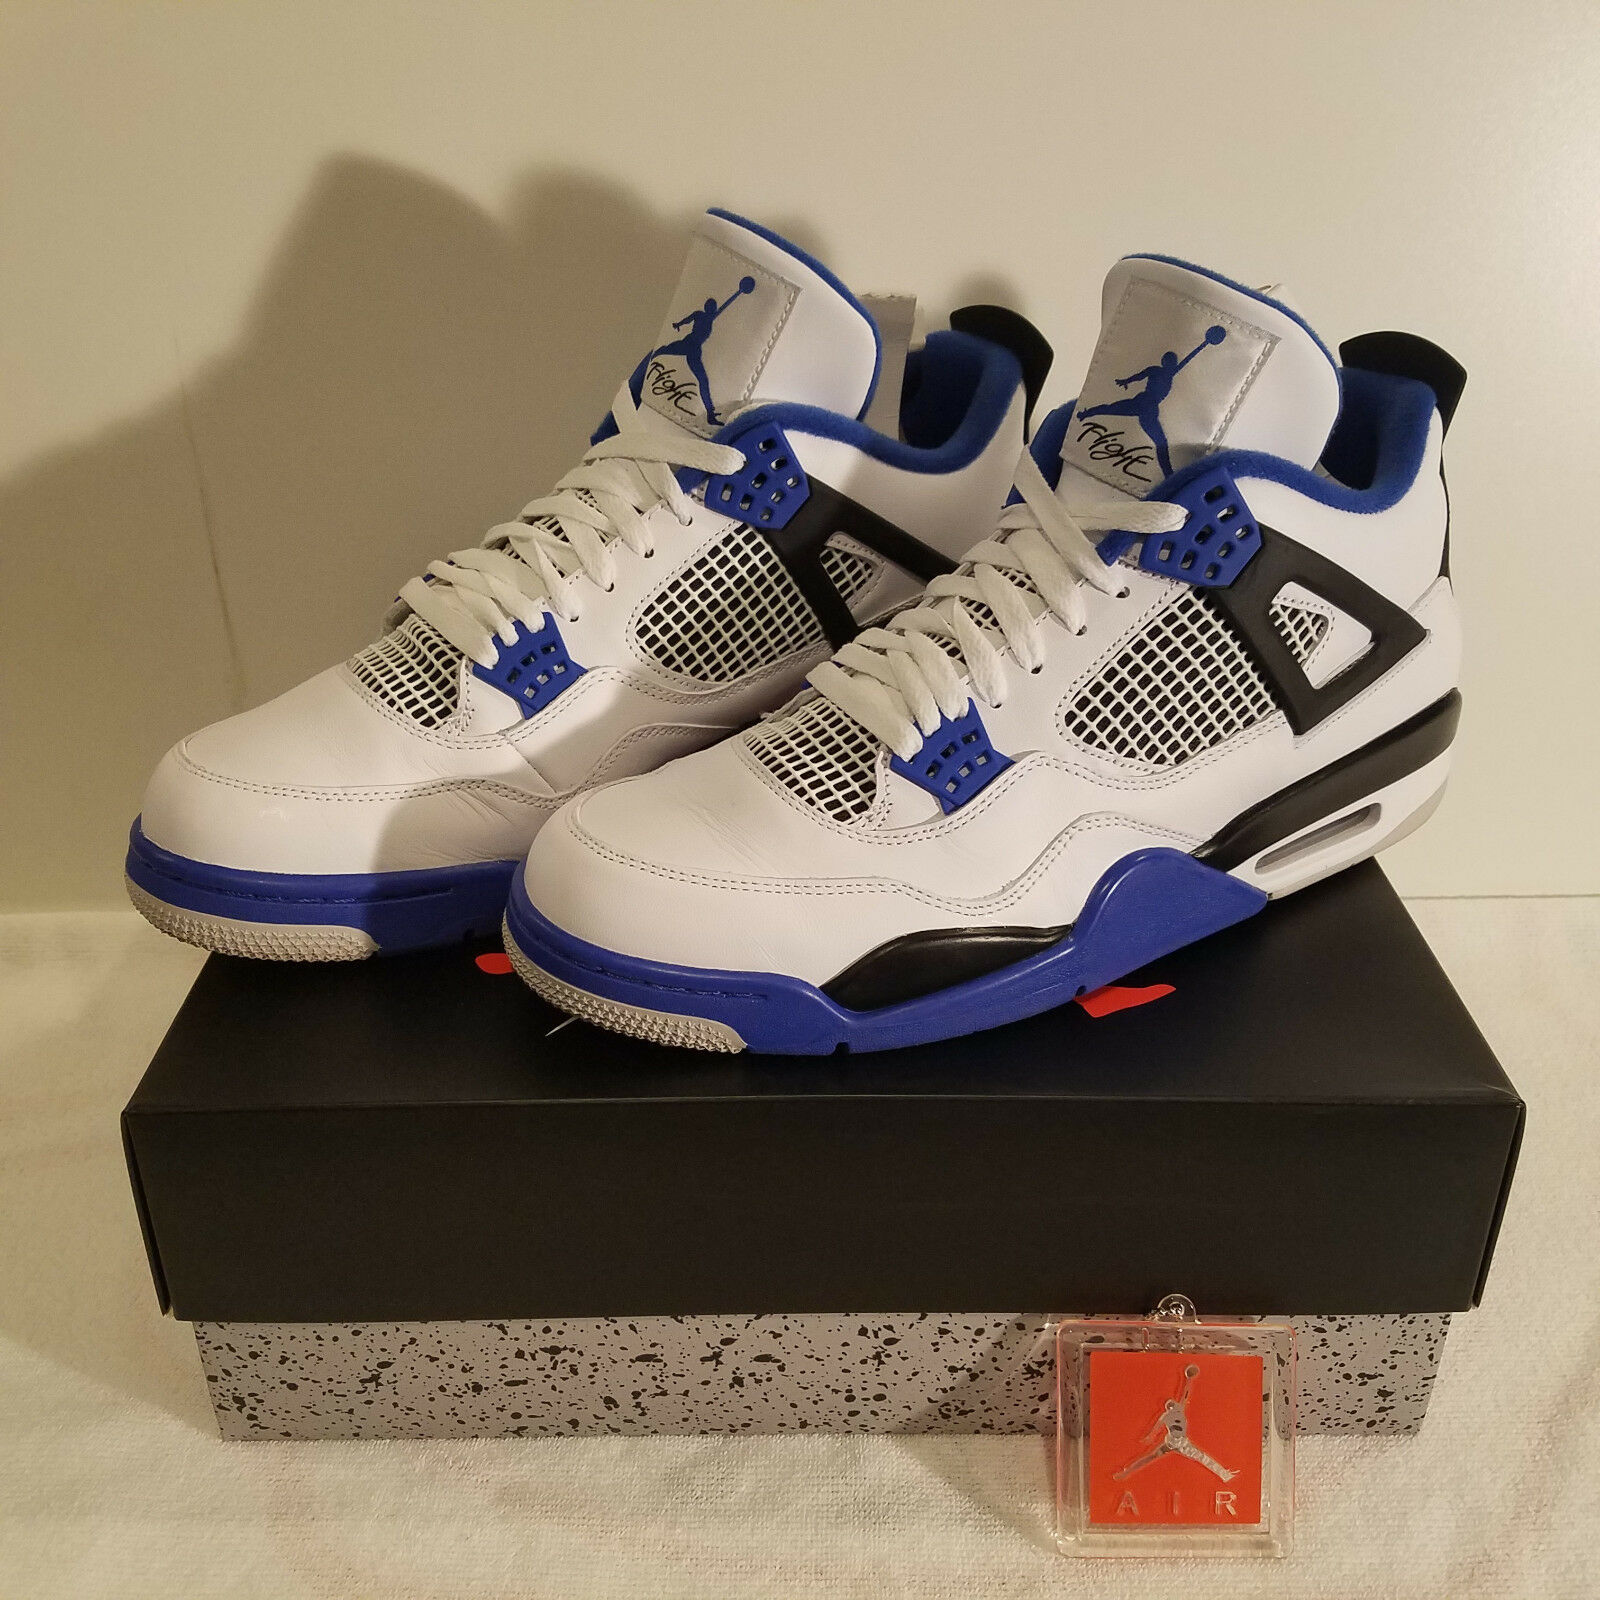 890c3b177f1 Air Jordan 4 Retro Motorsport Men's White Game Black 308497-117 Royal shoes  nefuxb1636-Athletic Shoes